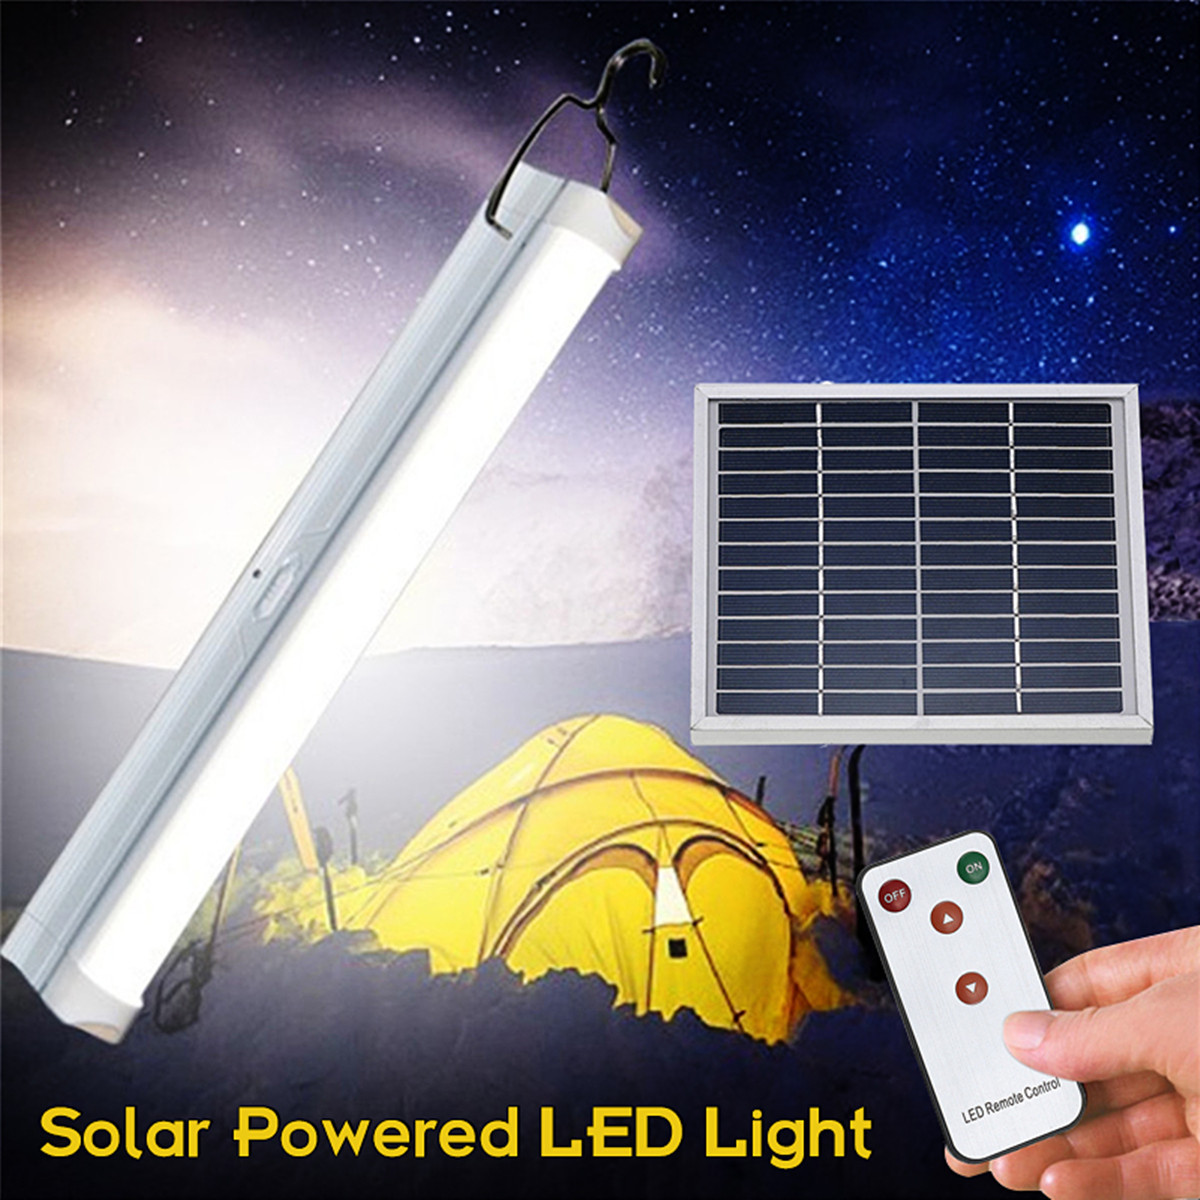 Solar Powered Lights 30 LED Bulb Outdoor Garden Solar Light Floodlight With Remote Control Camping Emergency Lighting Lamp mising remote control solar powered 30 led solar light bulb floodlight outdoor garden light emergency camping lamp